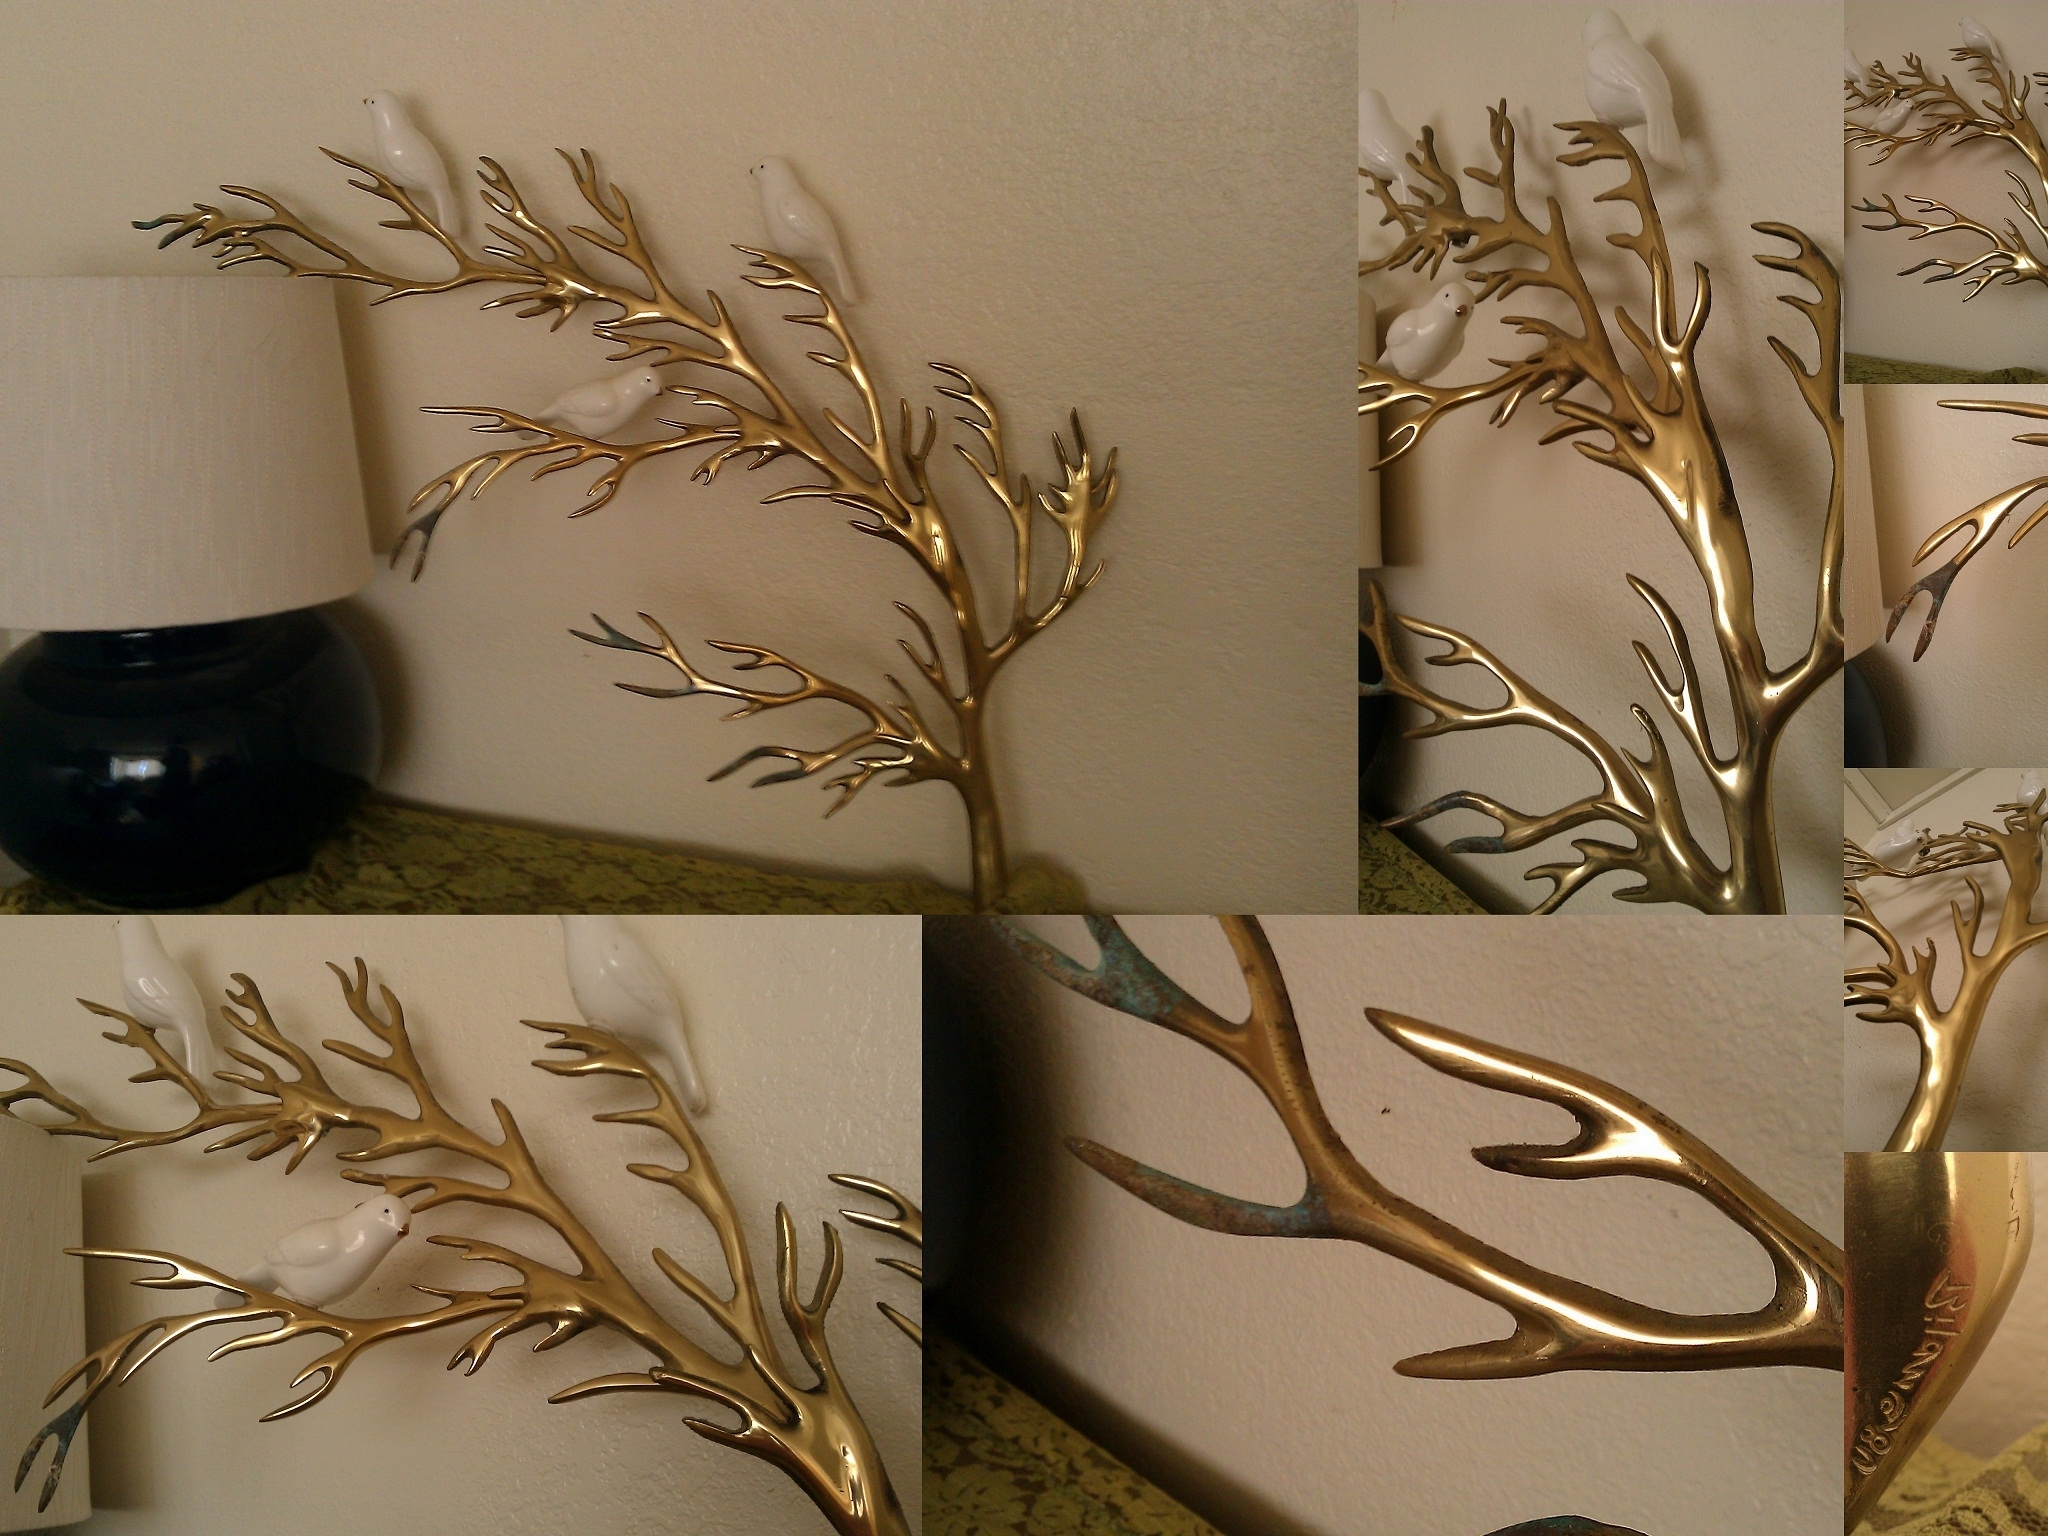 Current Wall Art Designs: Wall Art Sculpture Rare Vintage Bijan Brass Tree Intended For Tree Sculpture Wall Art (View 5 of 15)